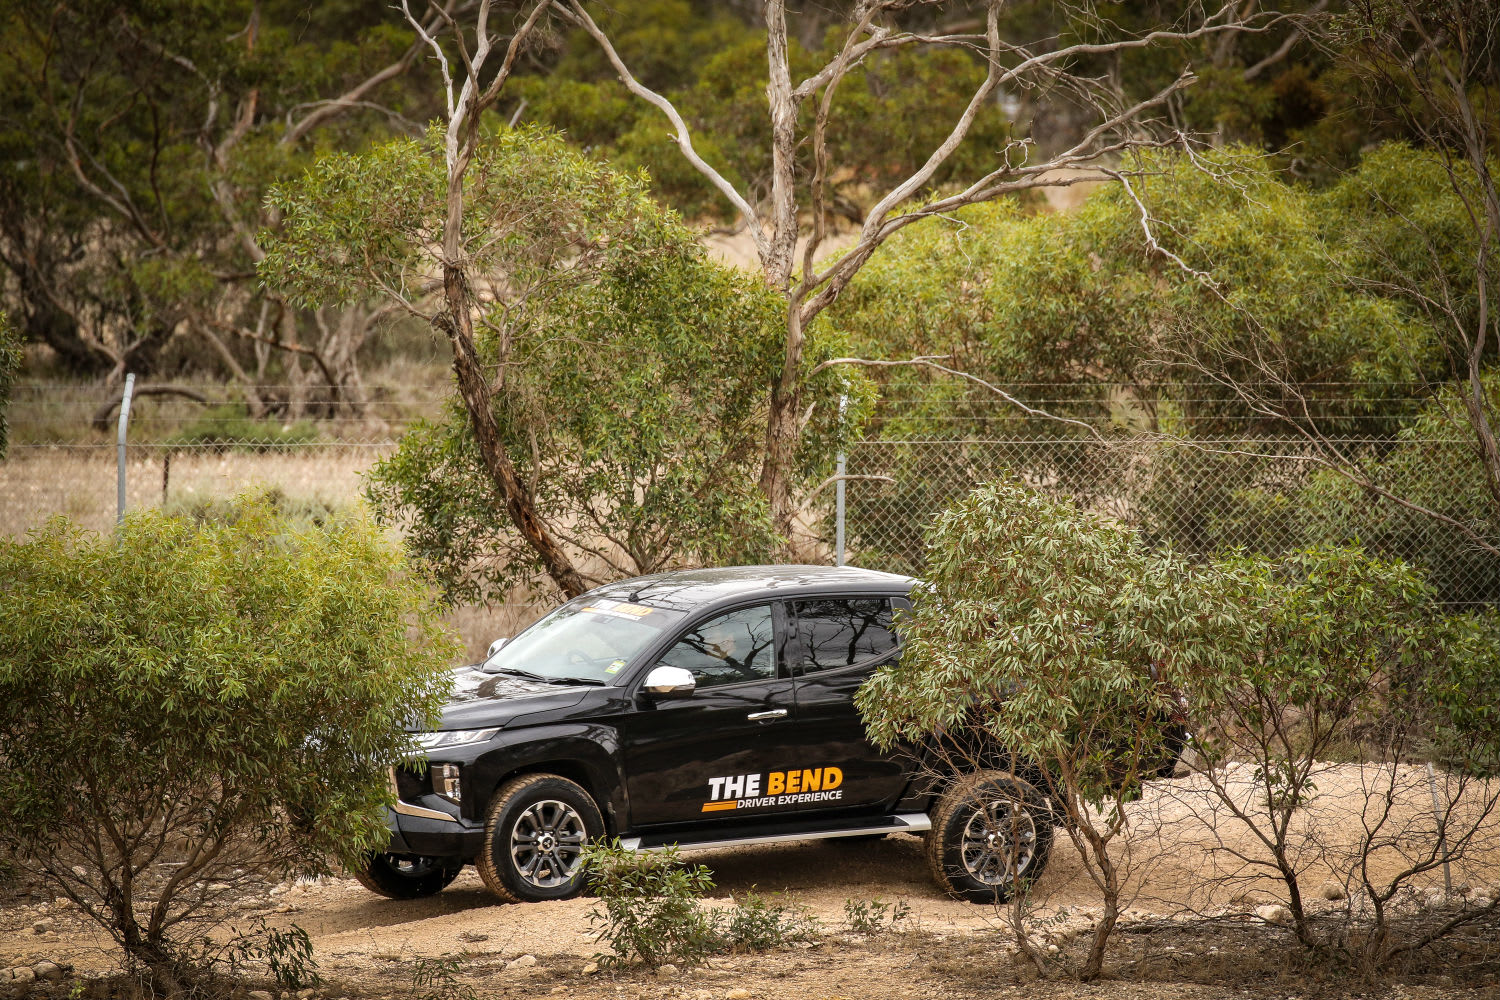 4WD Training Course, 3 Hours - The Bend Motorsport Park, Adelaide